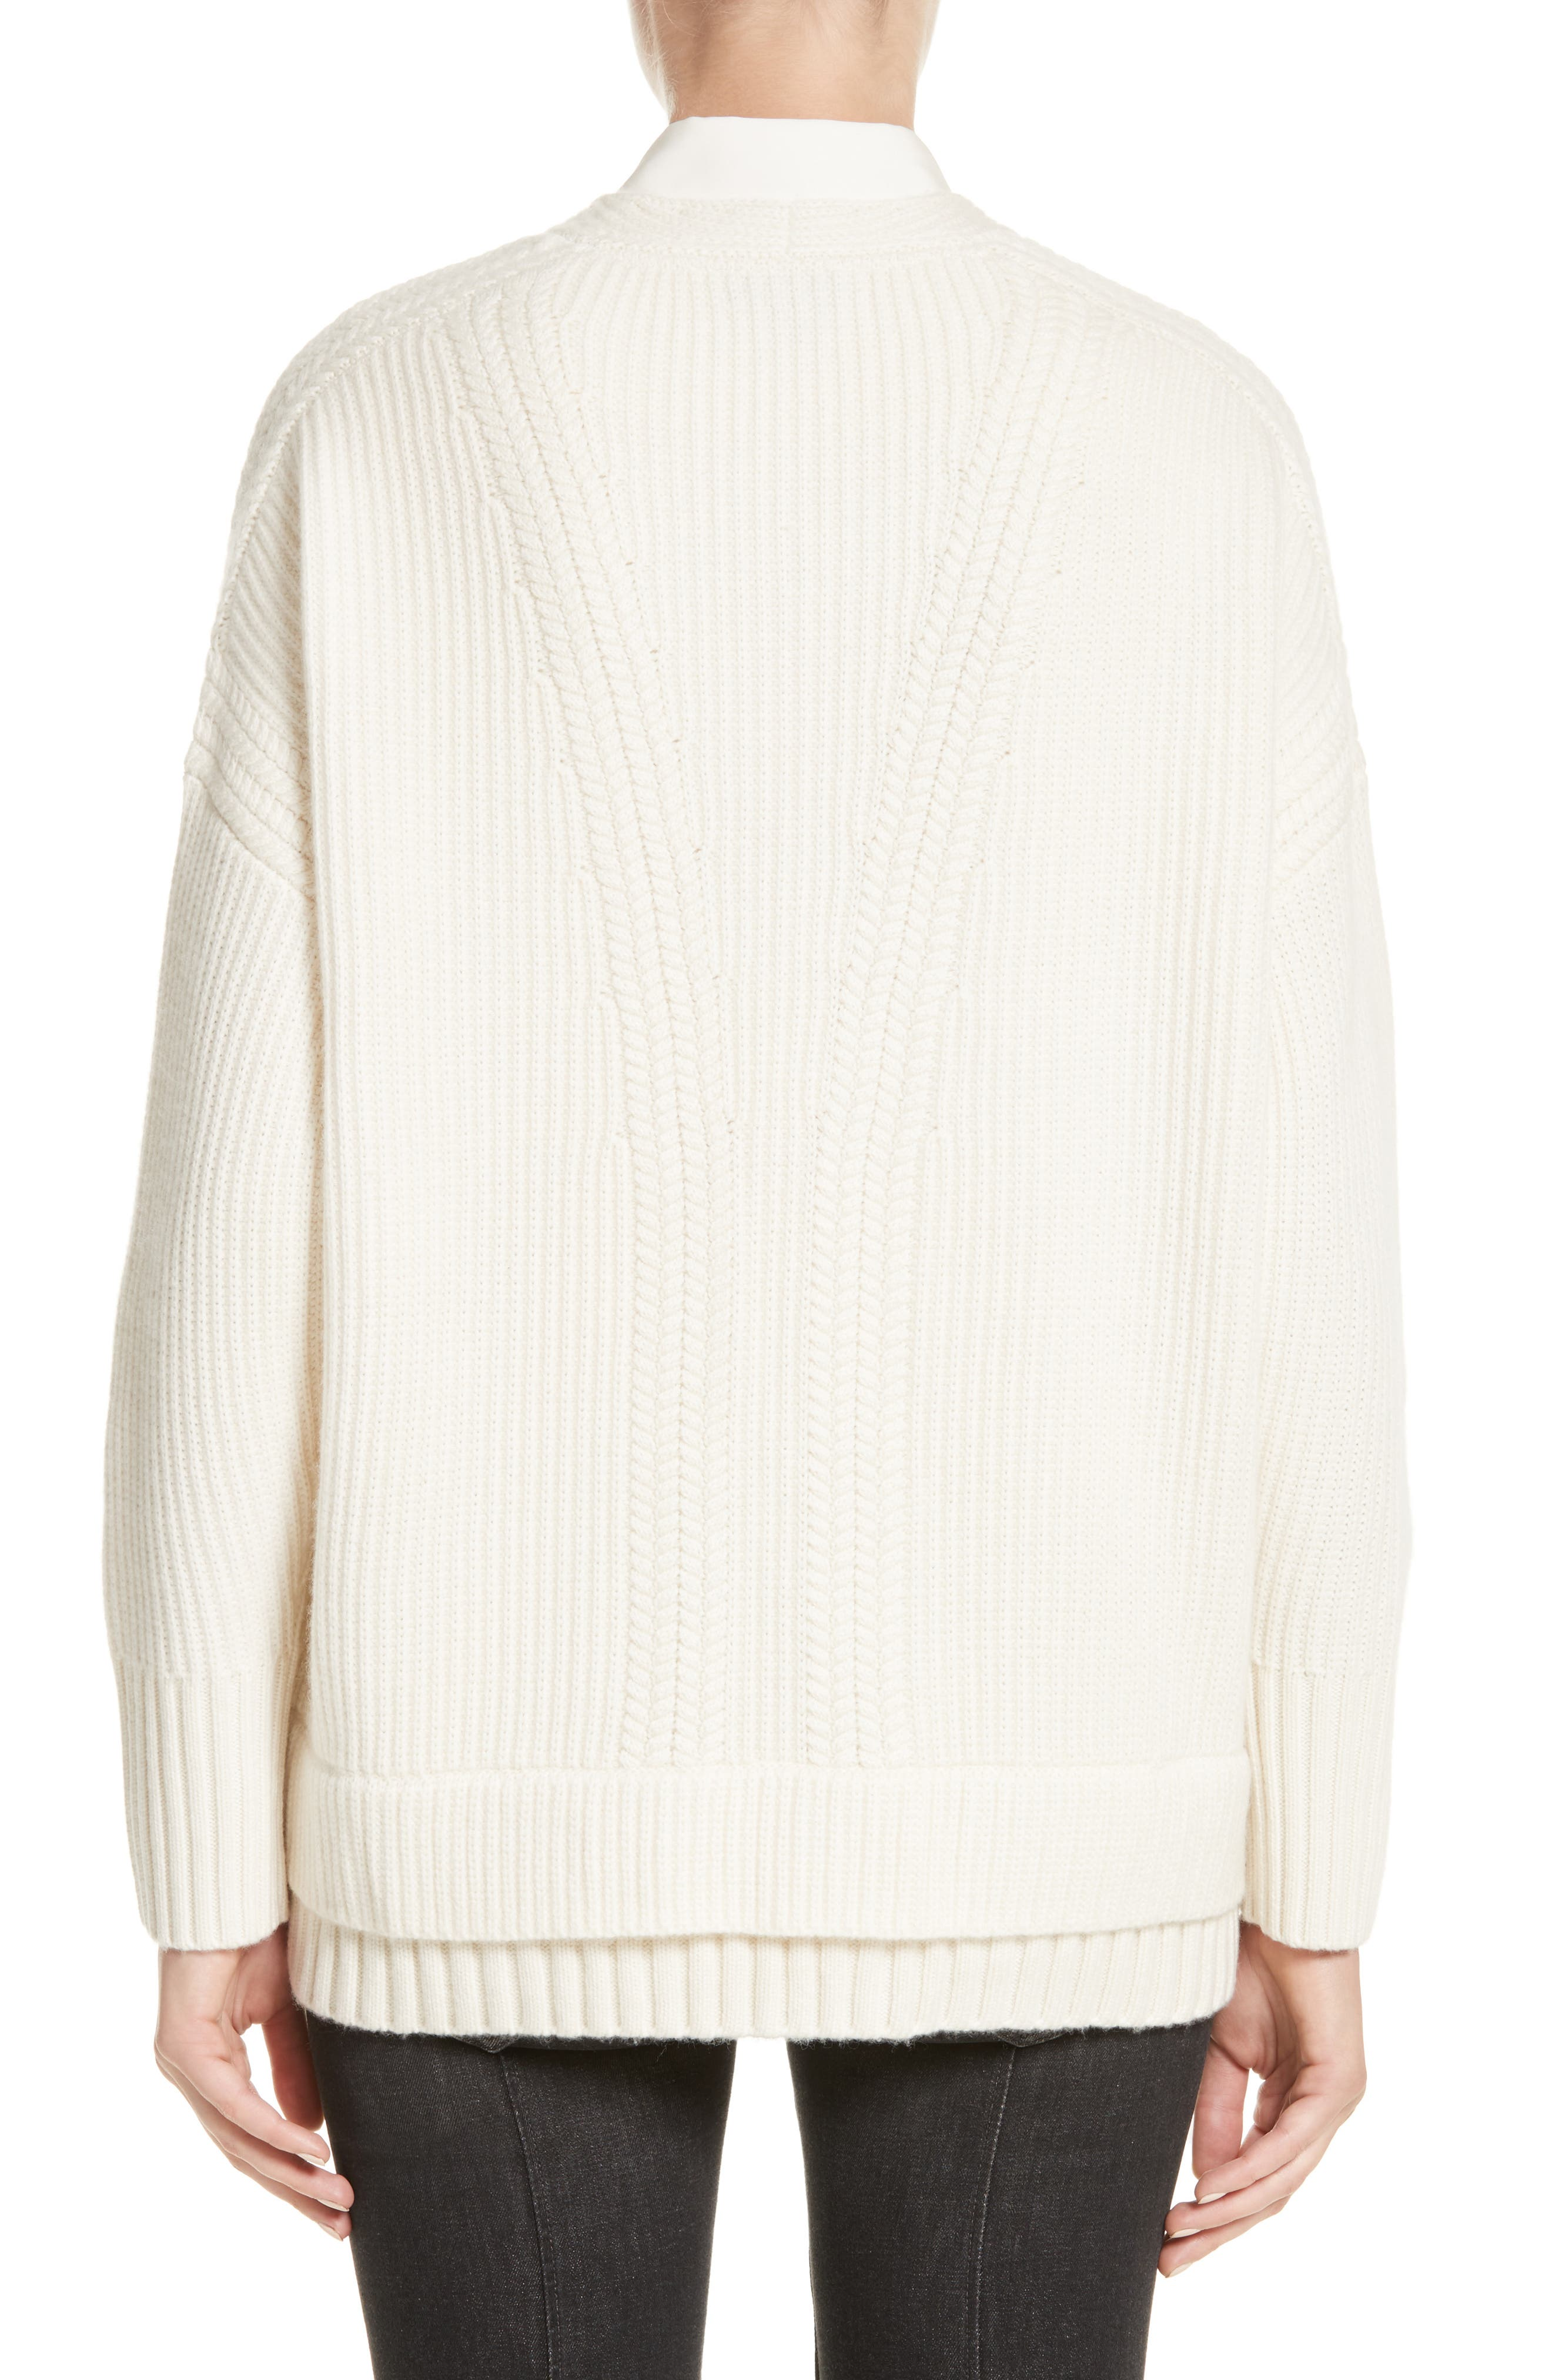 Santerno Wool & Cashmere Cable Knit Sweater,                             Alternate thumbnail 2, color,                             103